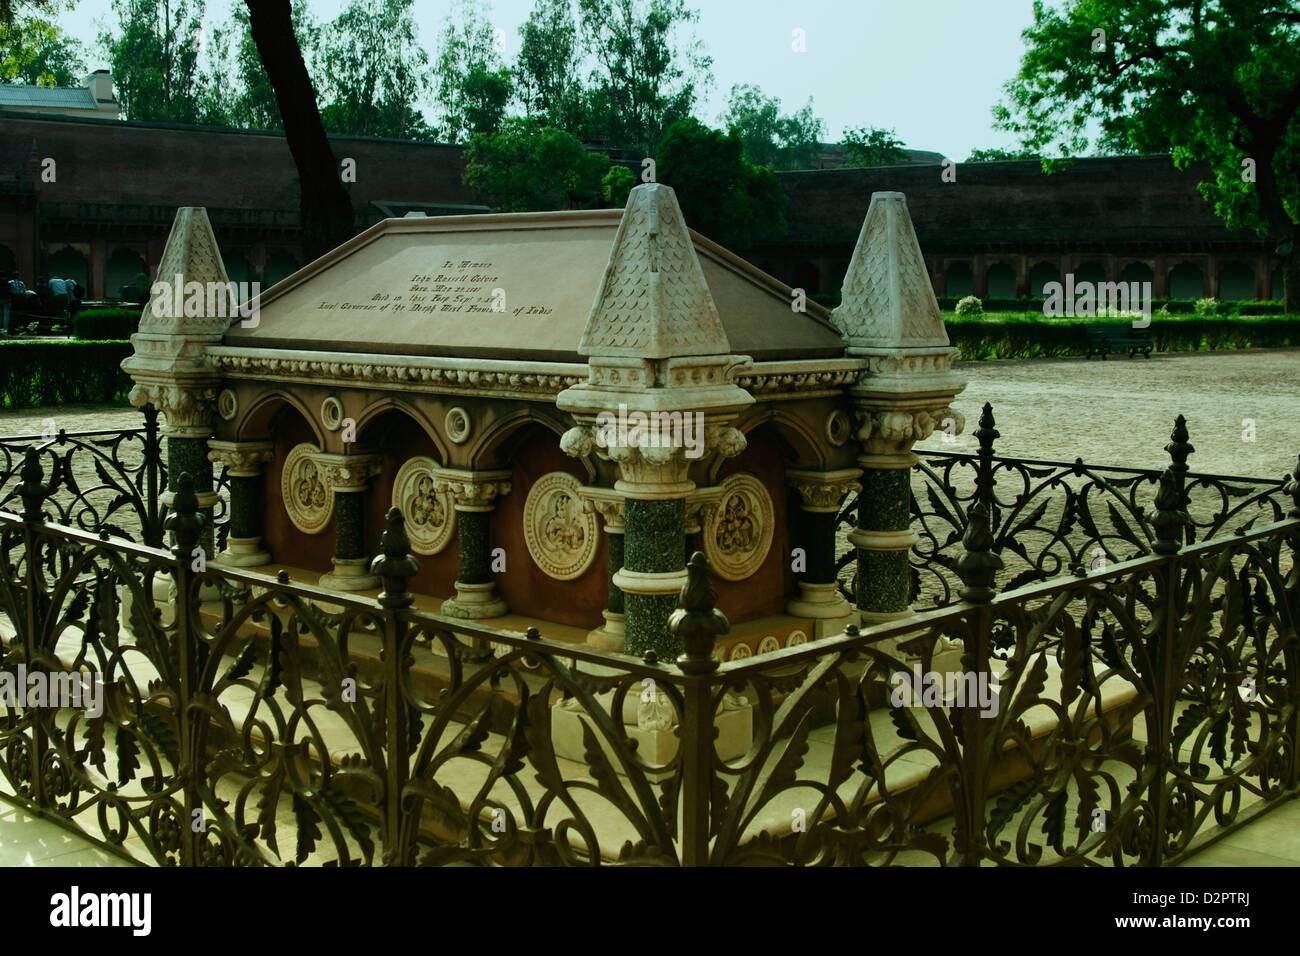 Tomb of John Russell Colvin in a fort, Agra Fort, Agra, Uttar Pradesh, India - Stock Image